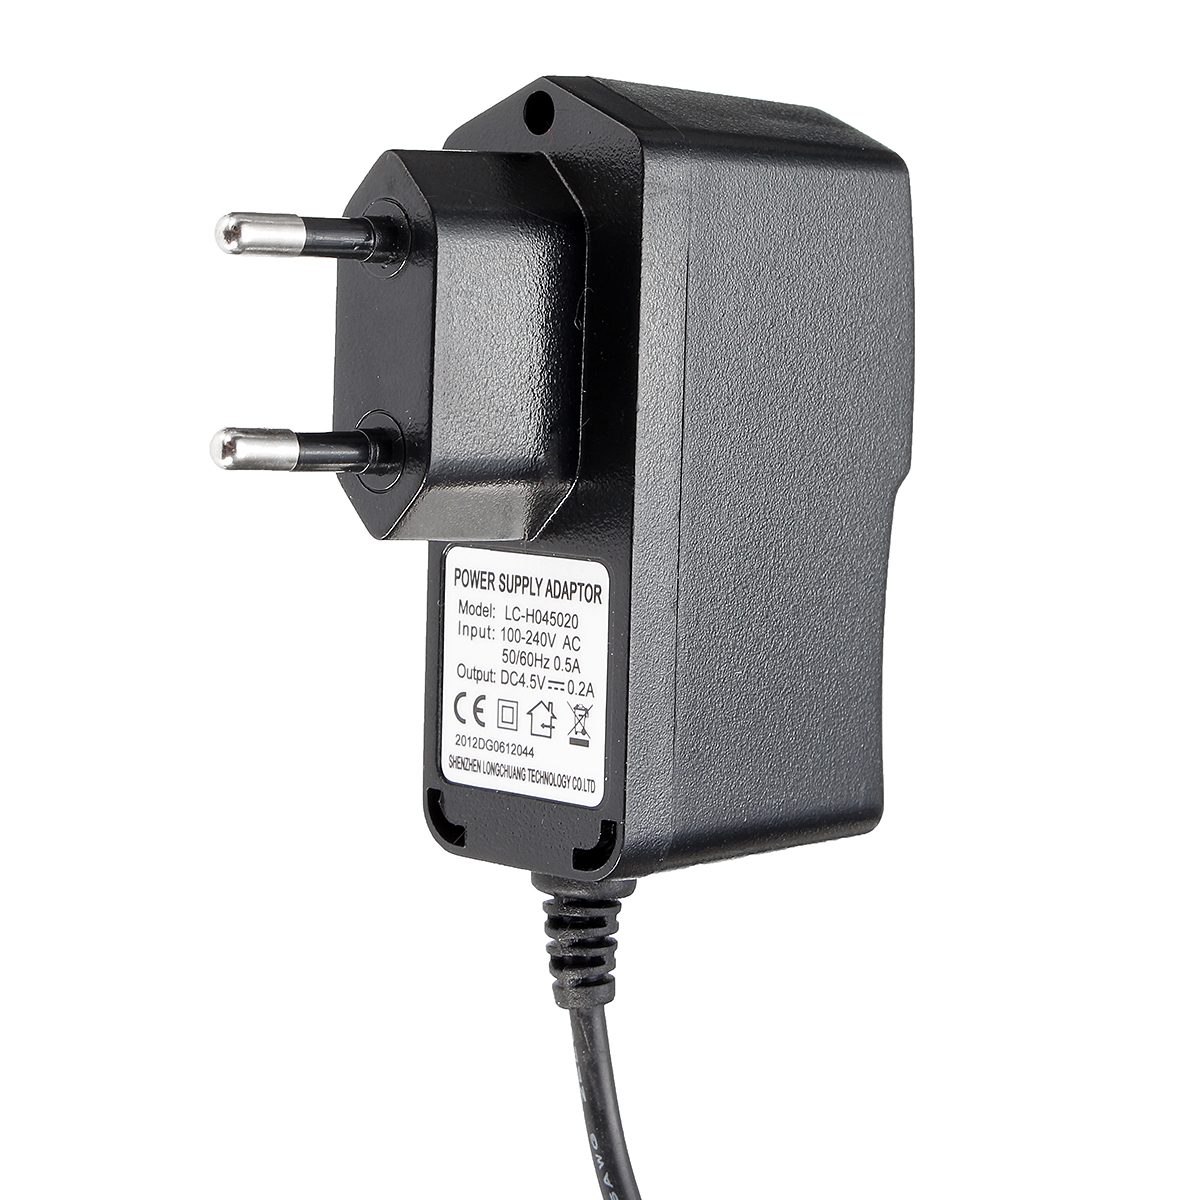 AC 100 V-240V DC 4.5V 0.2A Adapter US/EU Plug Power Supply Charger For Wireless Weather Station Clock